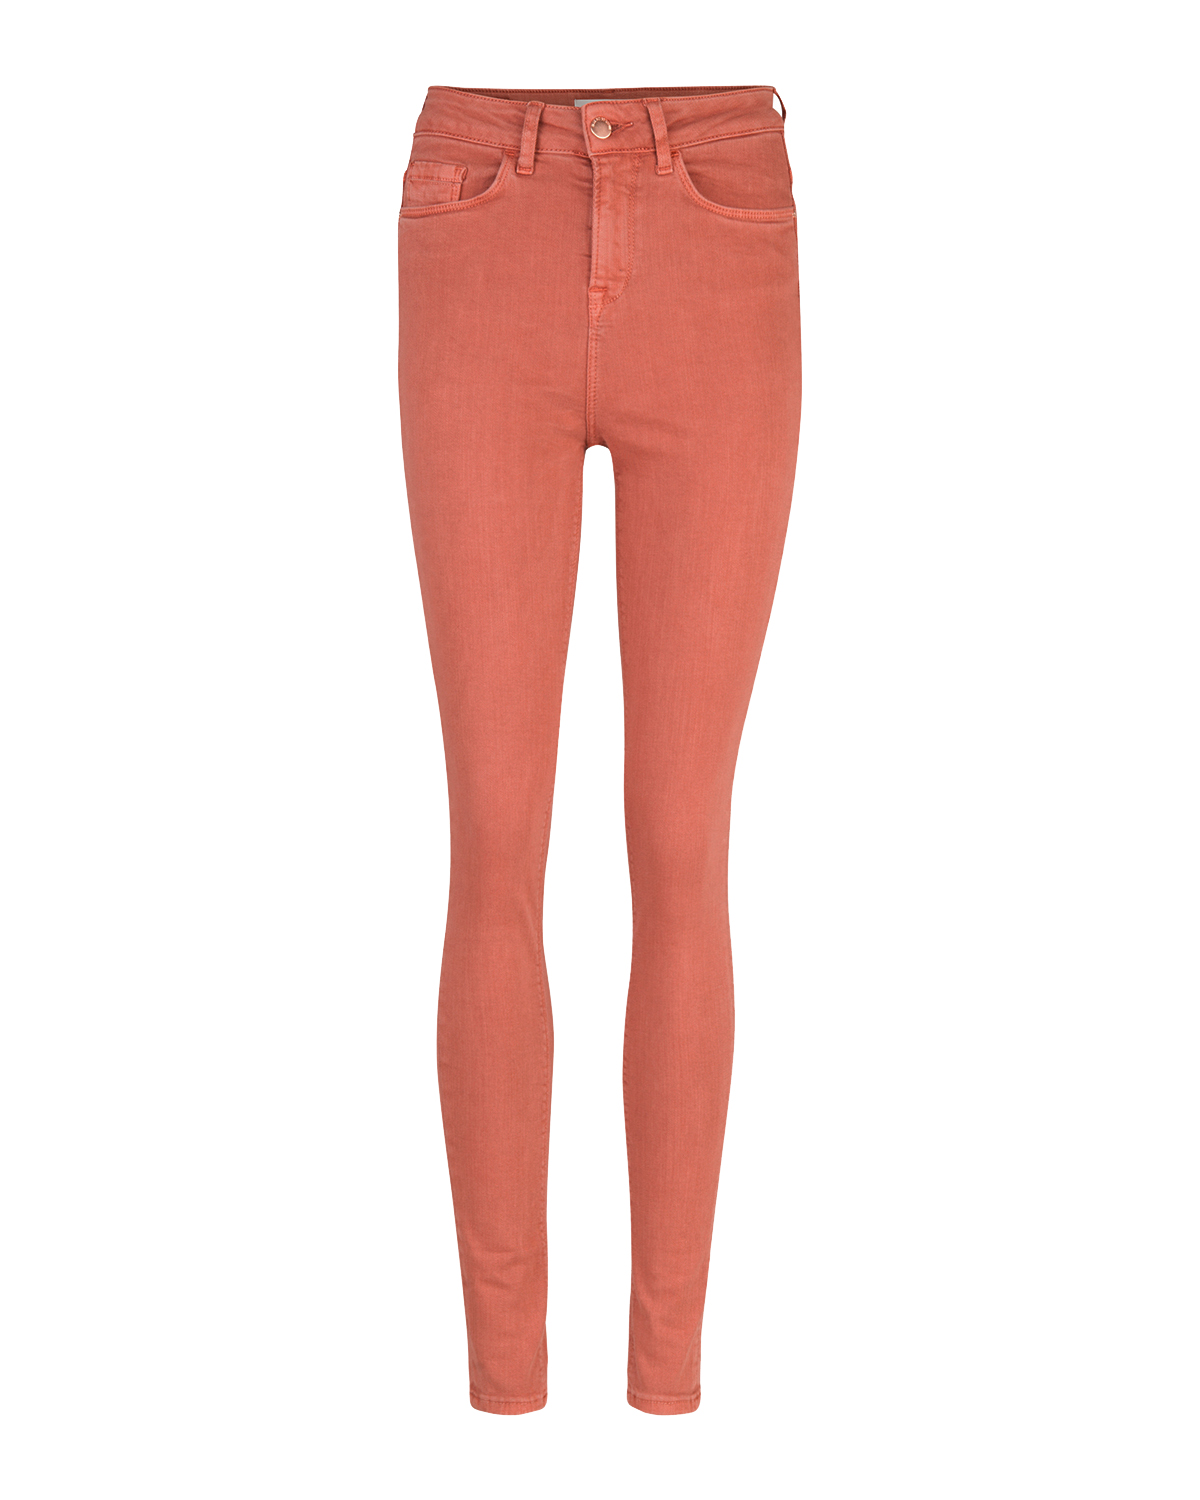 Dames high rise skinny broek